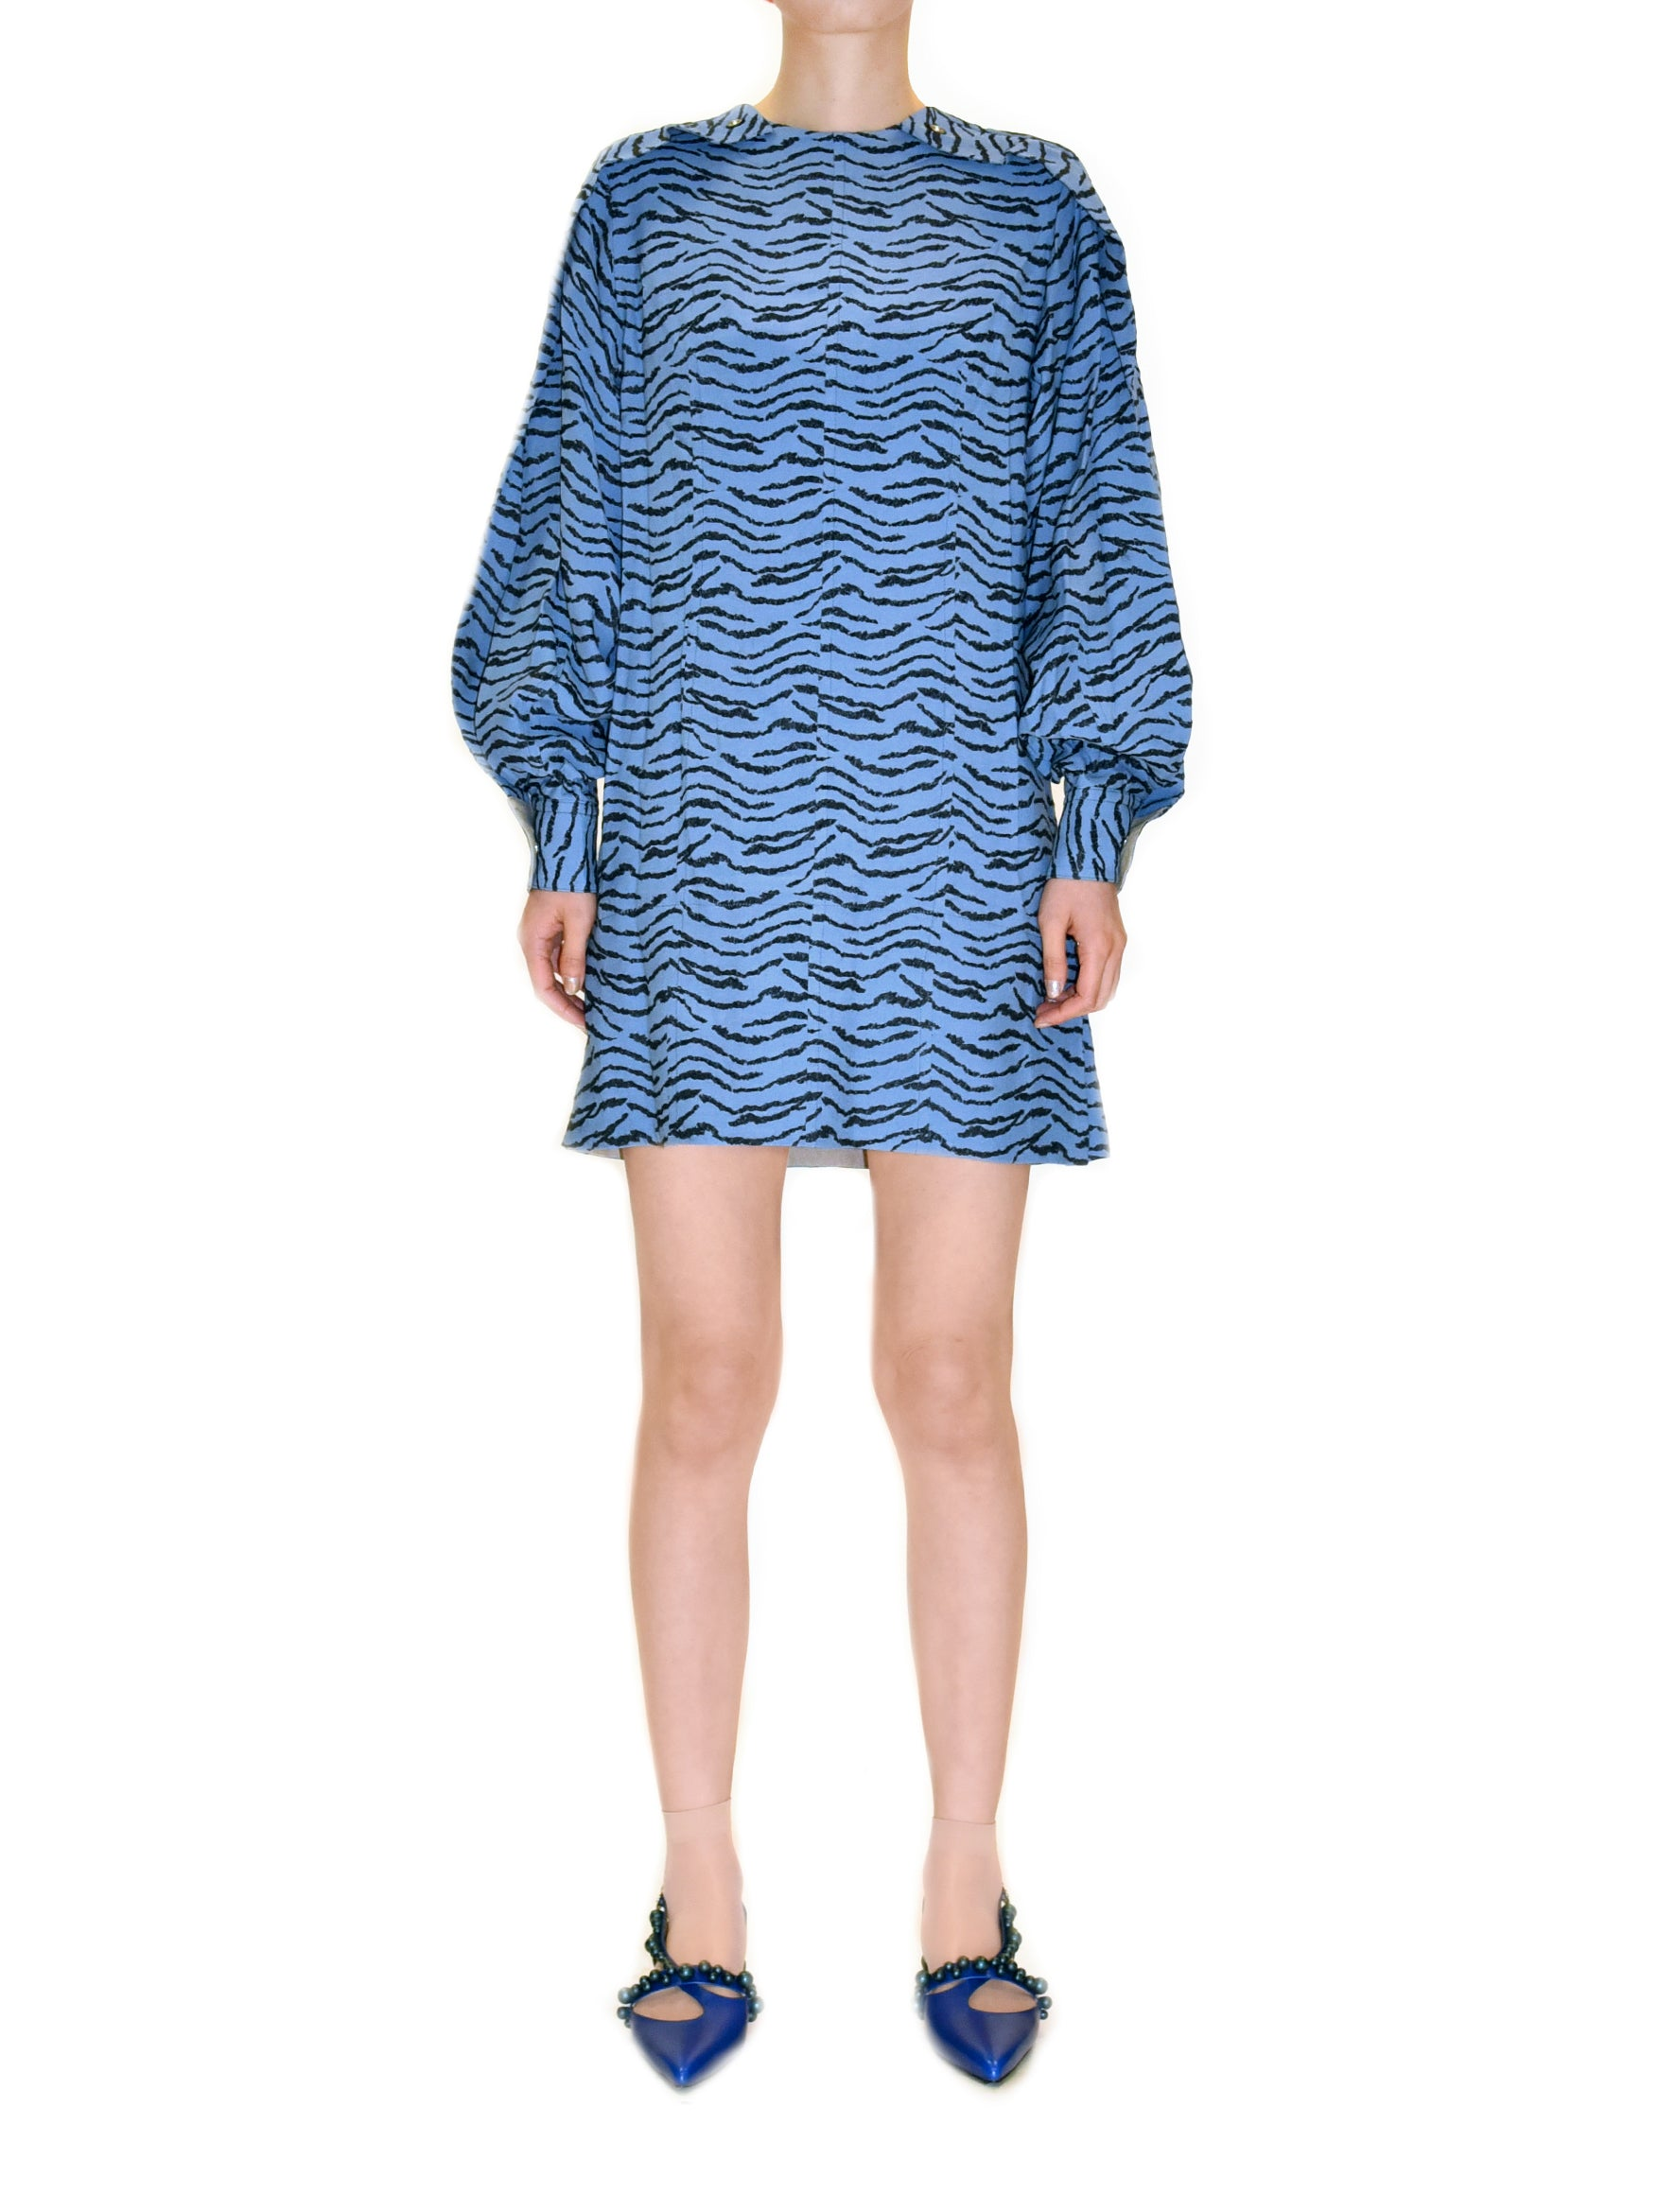 Toga Pulla Light Blue Jacquard Dress